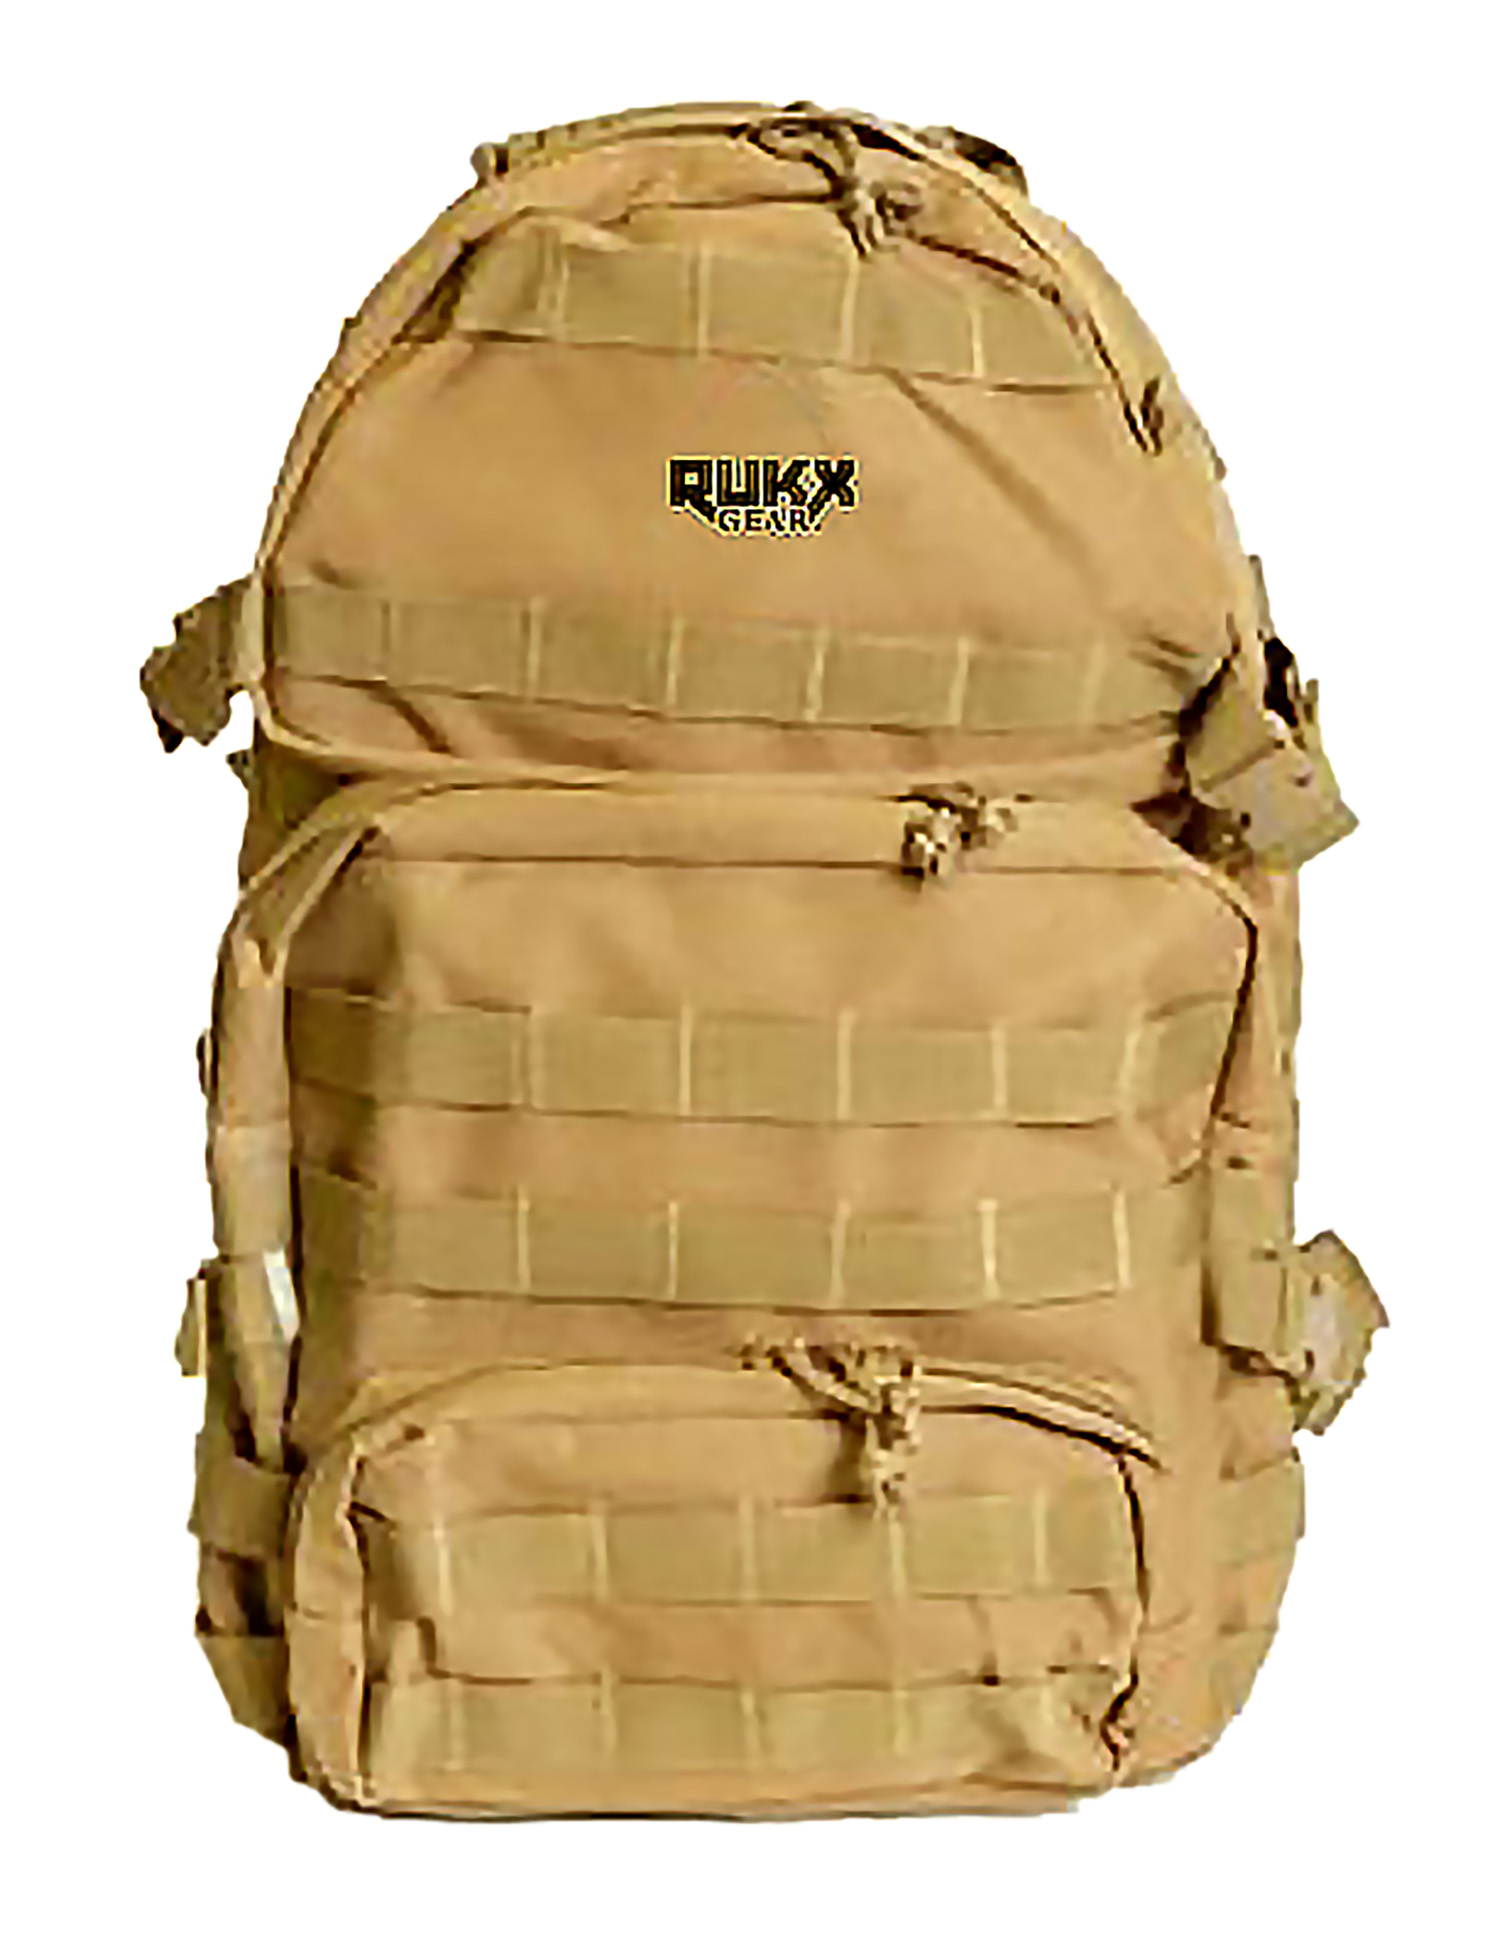 RUKX GEAR Tactical 3 Day 600D Polyester 16